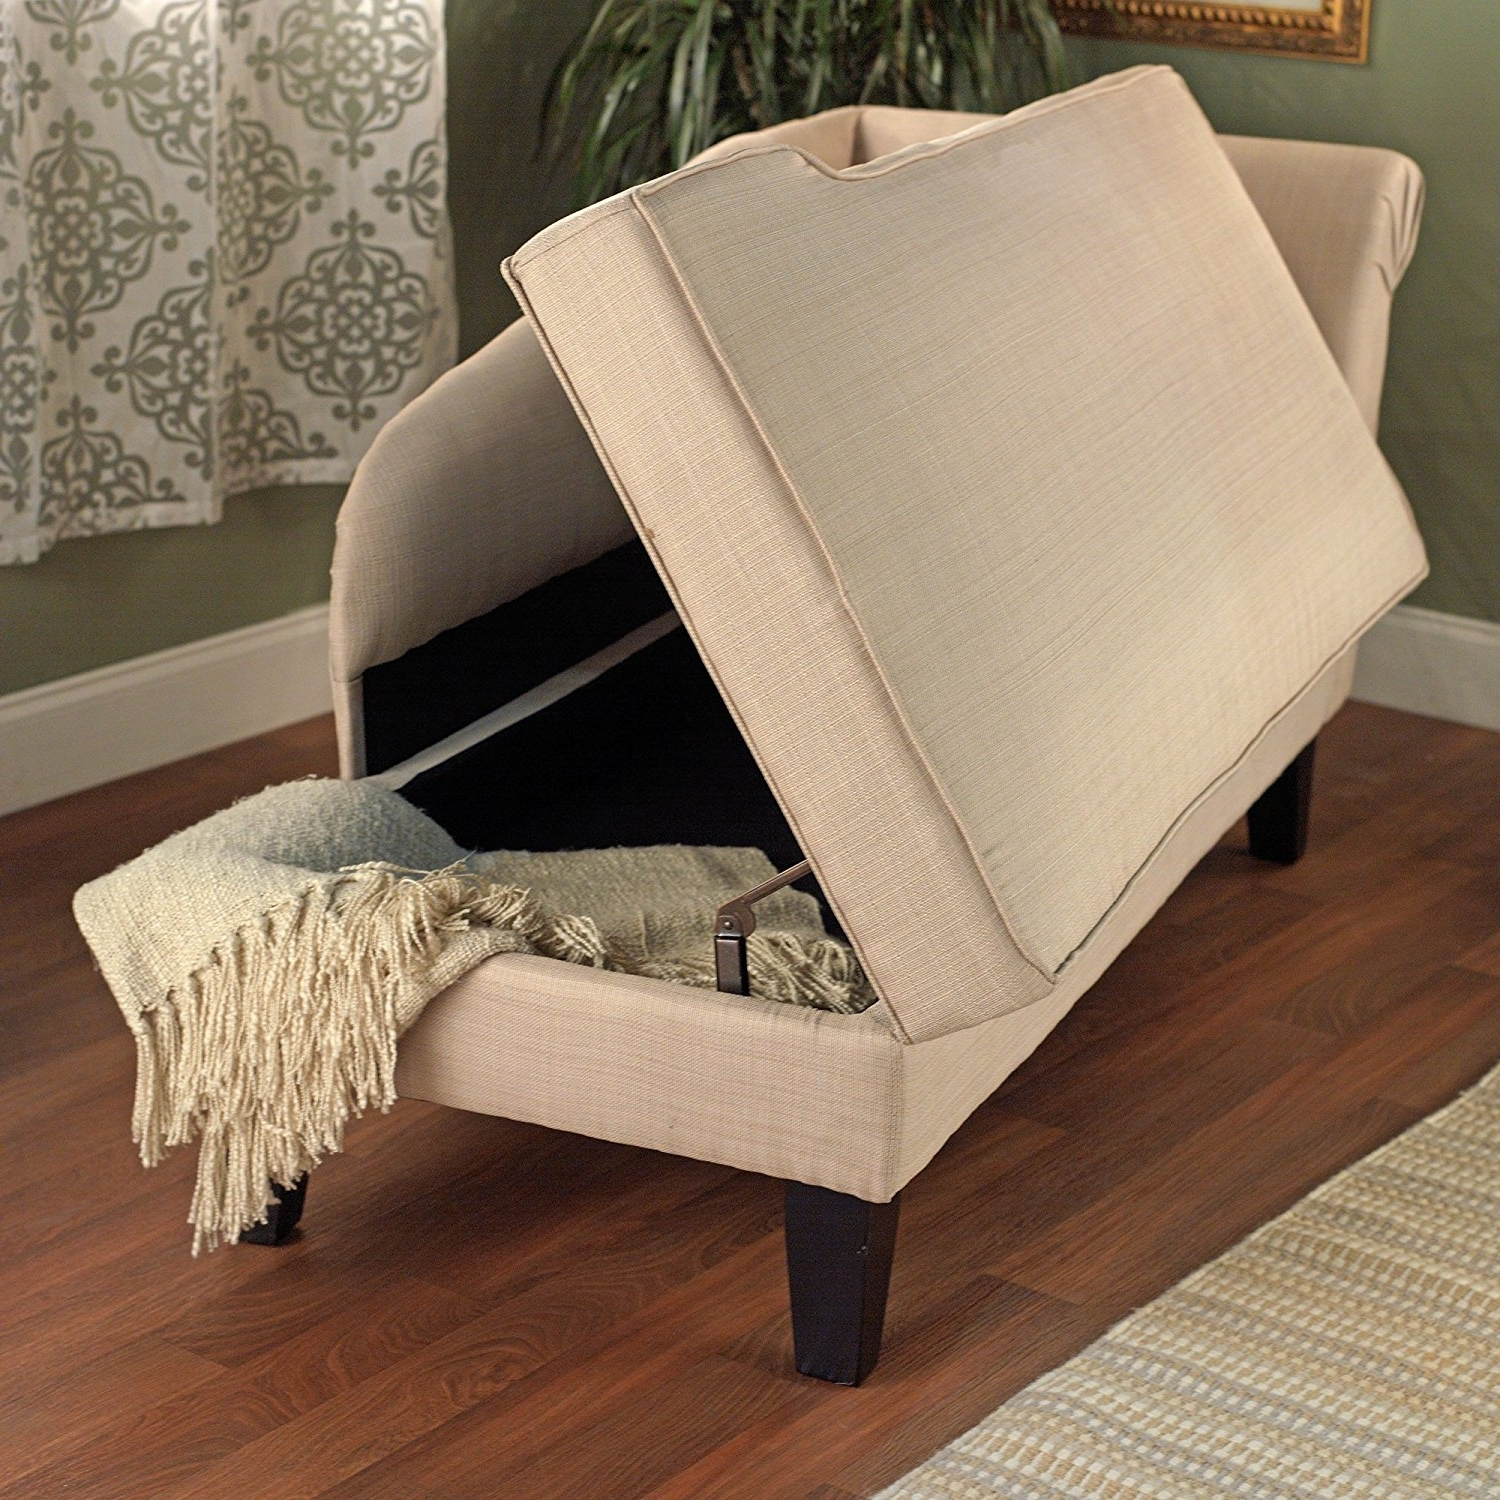 Amazon: Tms Leena Storage Chaise, Beige: Kitchen & Dining Inside 2017 Chaise Lounges With Storage (View 1 of 15)